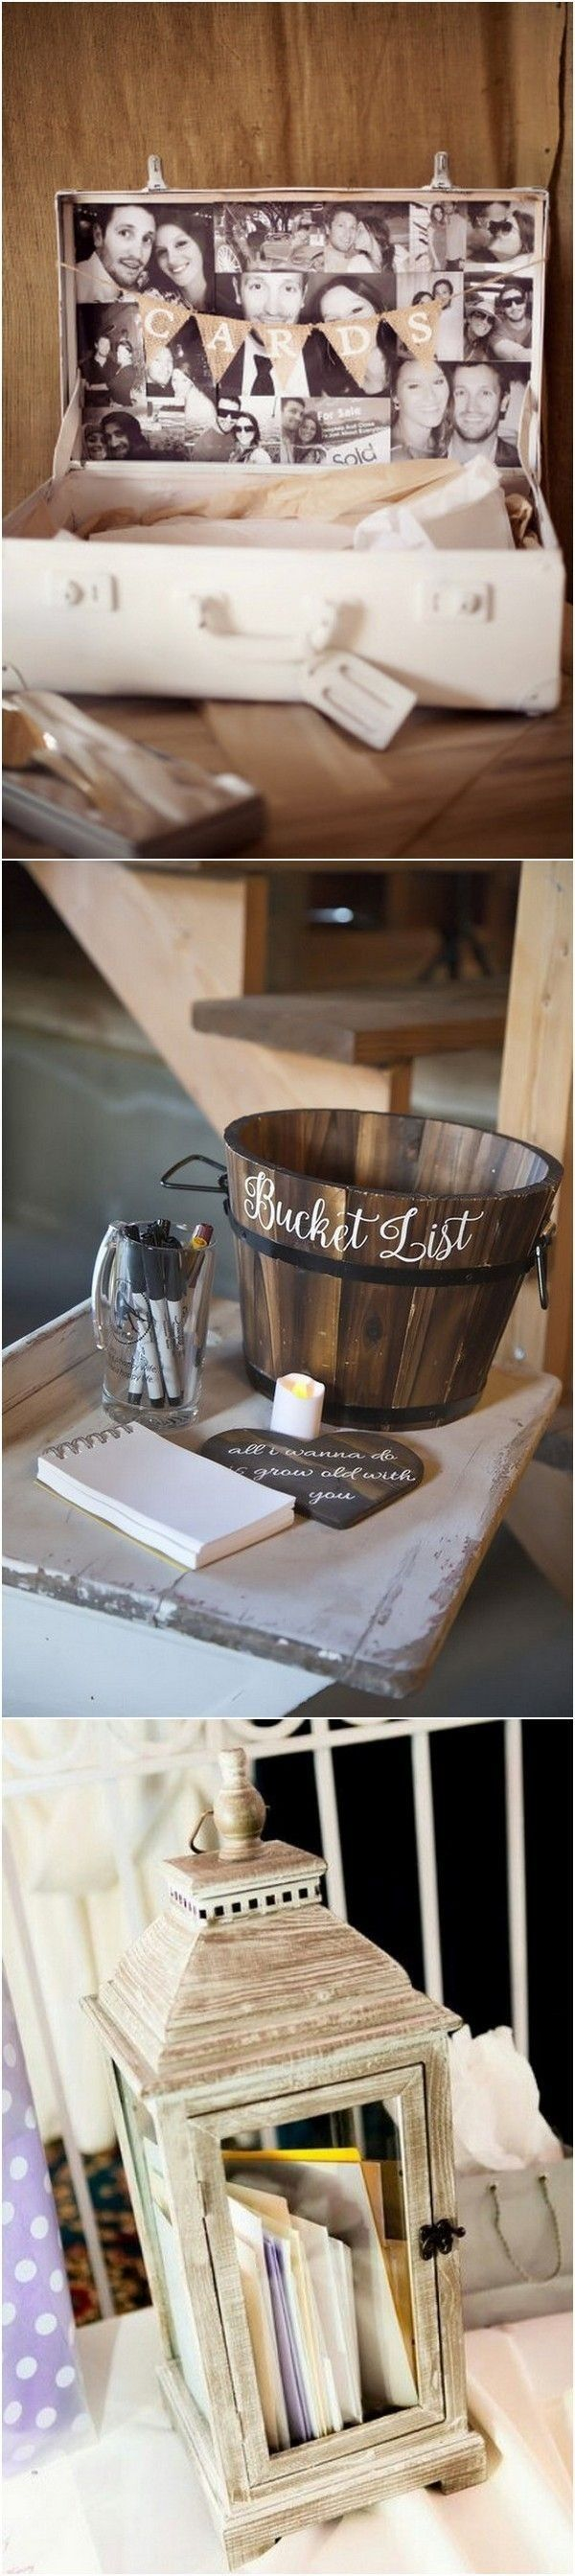 Rustic wedding decor, rustic decor, bucket list, wedding, bridal shower, engagement party, guests write down things the couple should do, diy wedding decor, diy wedding, spring wedding, winter wedding, summer wedding, fall wedding, fun wedding #afflink